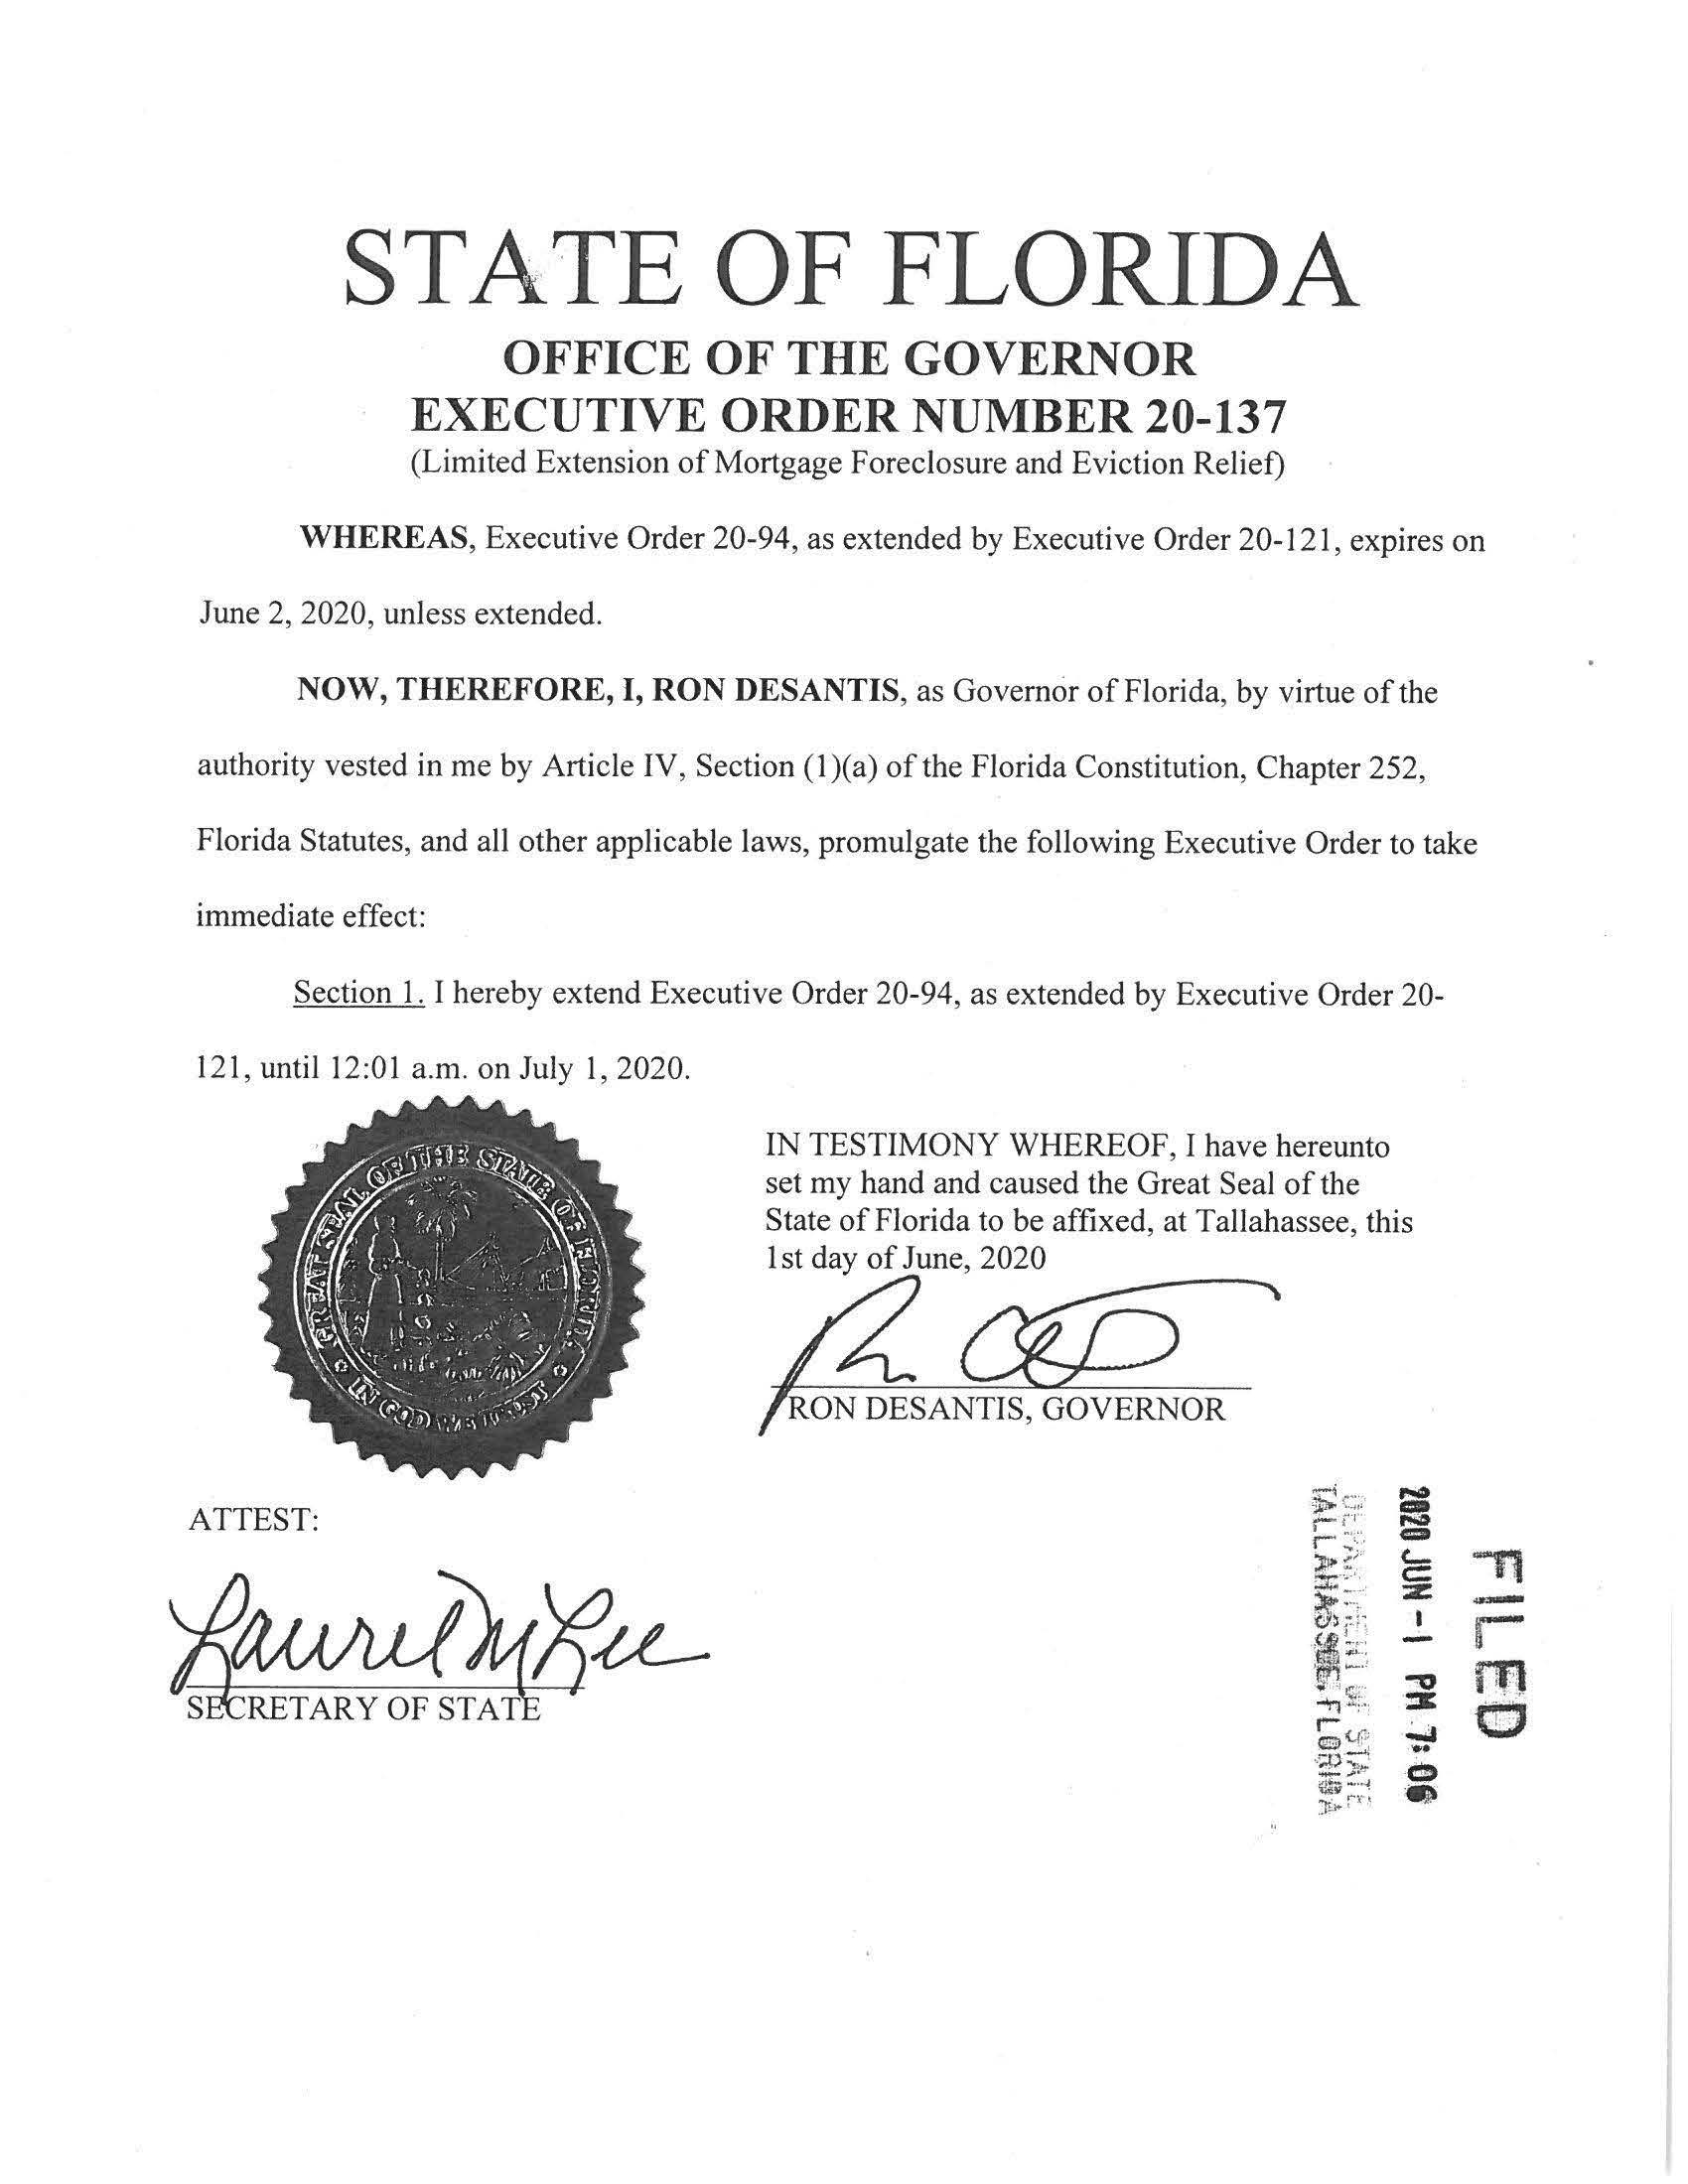 Image of the executive order, black type on a white page, over the signatures of Gov. Ron DeSantis a